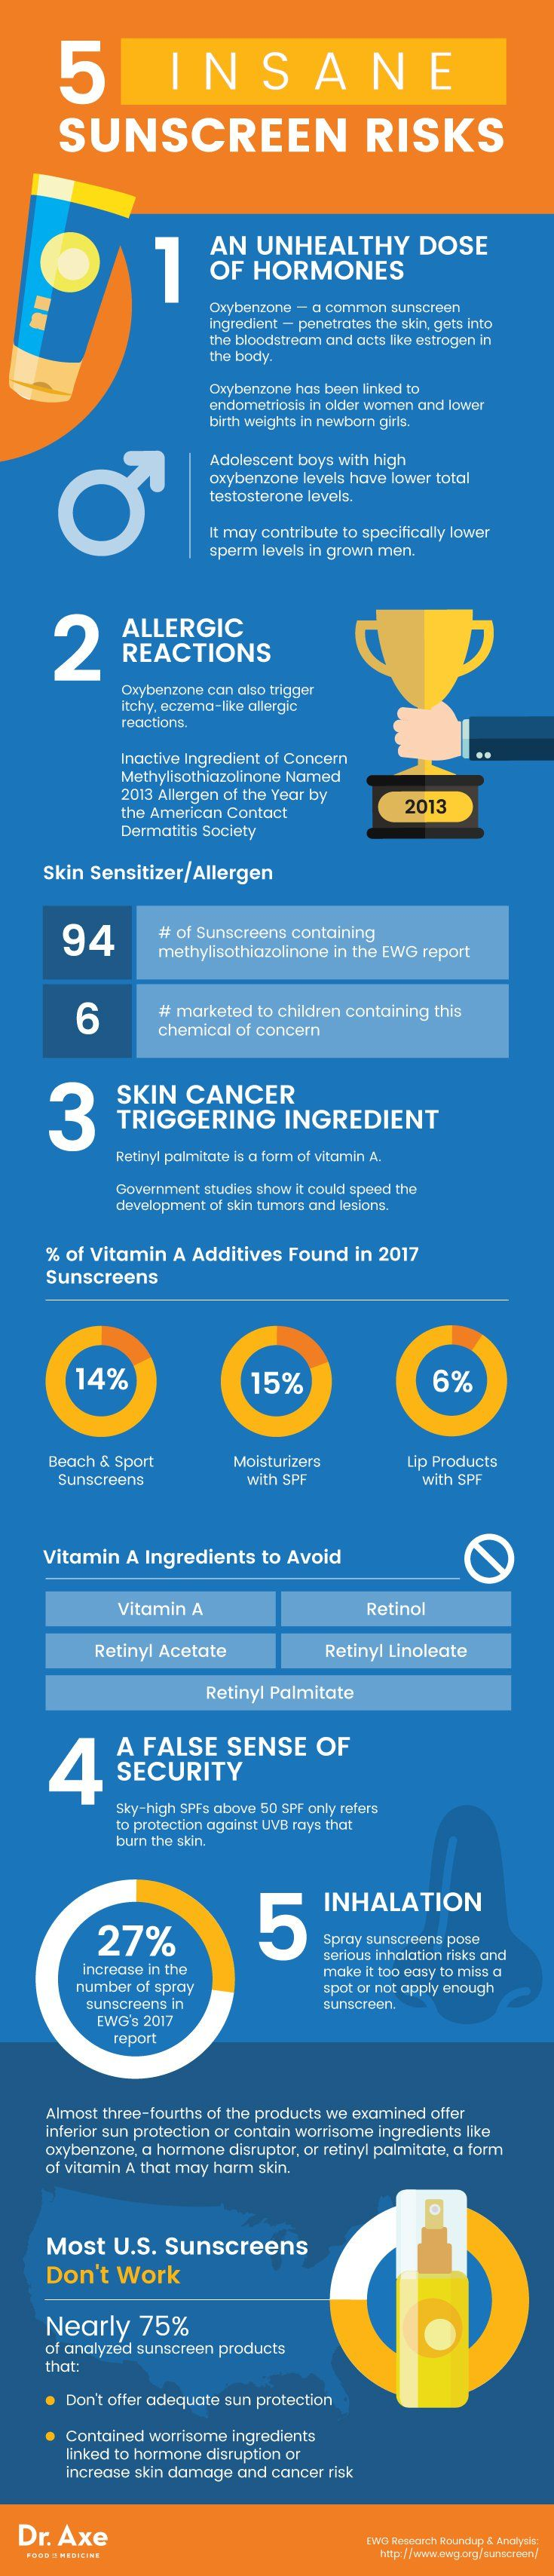 Best sunscreens - Dr. Axe http://www.draxe.com #health #natural #holistic